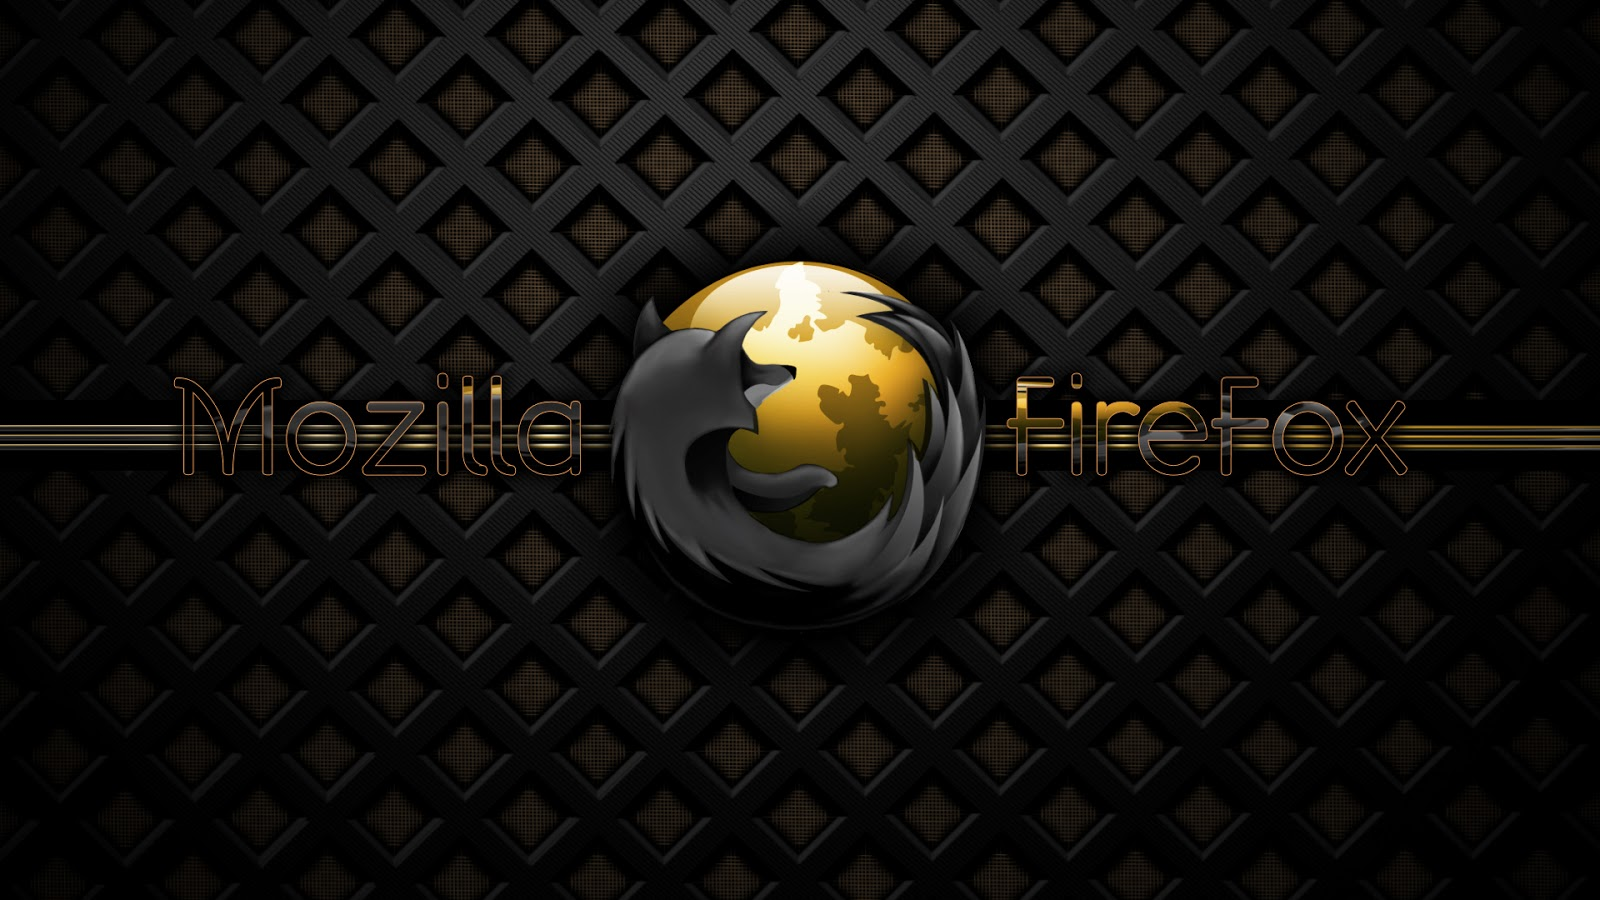 Download Mozilla Firefox Browser and Wallpapers 1600x900